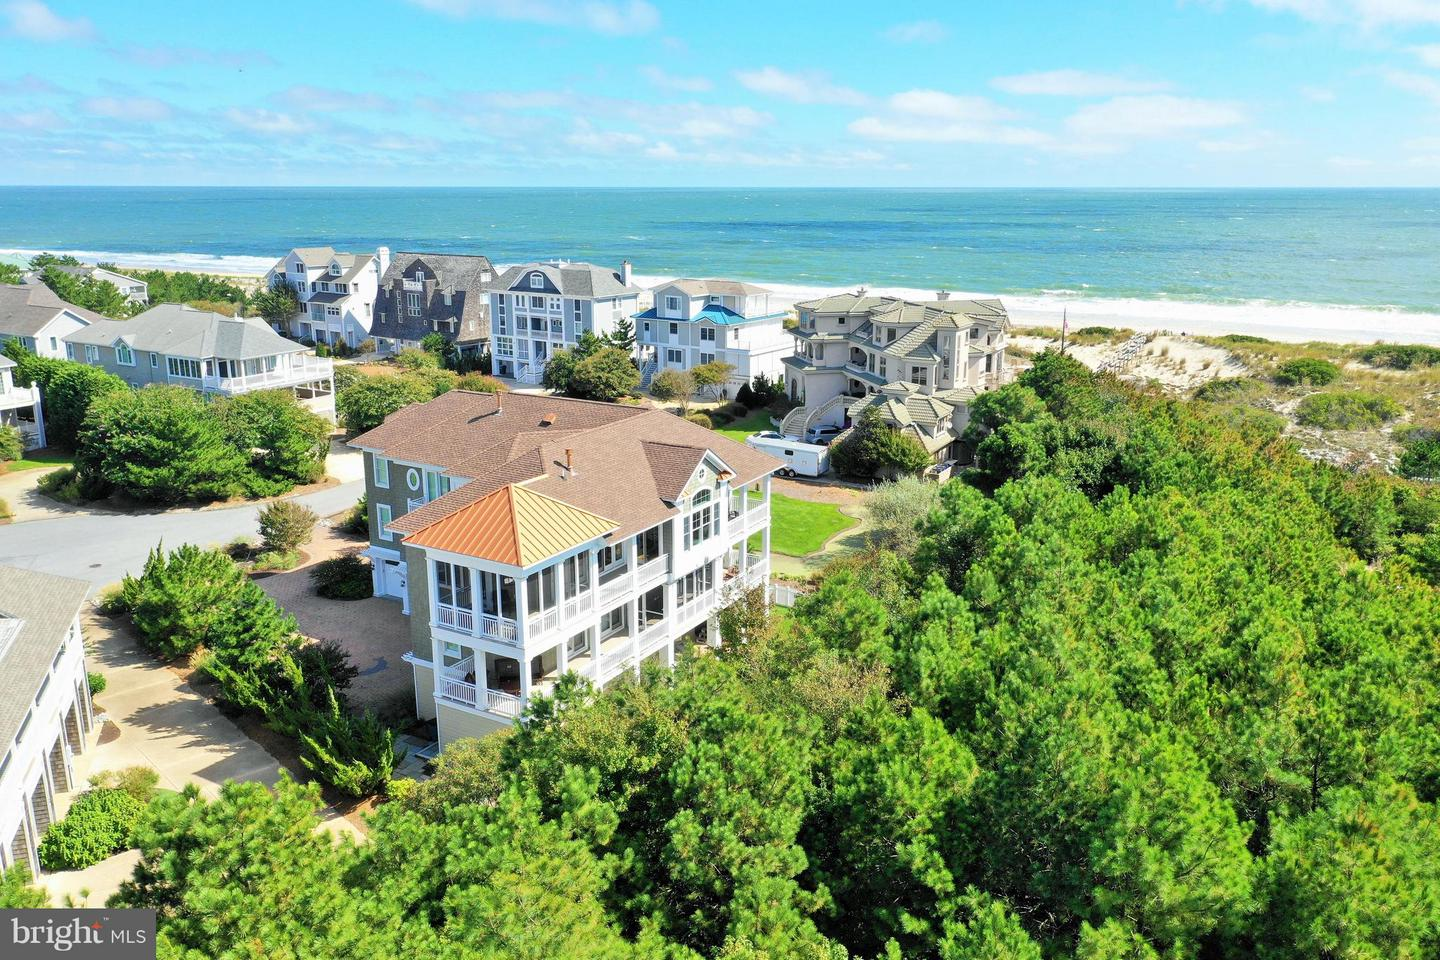 1002293530-300720129592-2018-09-25-15-08-25 31 Hall Ave | Rehoboth Beach, De Real Estate For Sale | MLS# 1002293530  - Suzanne Macnab